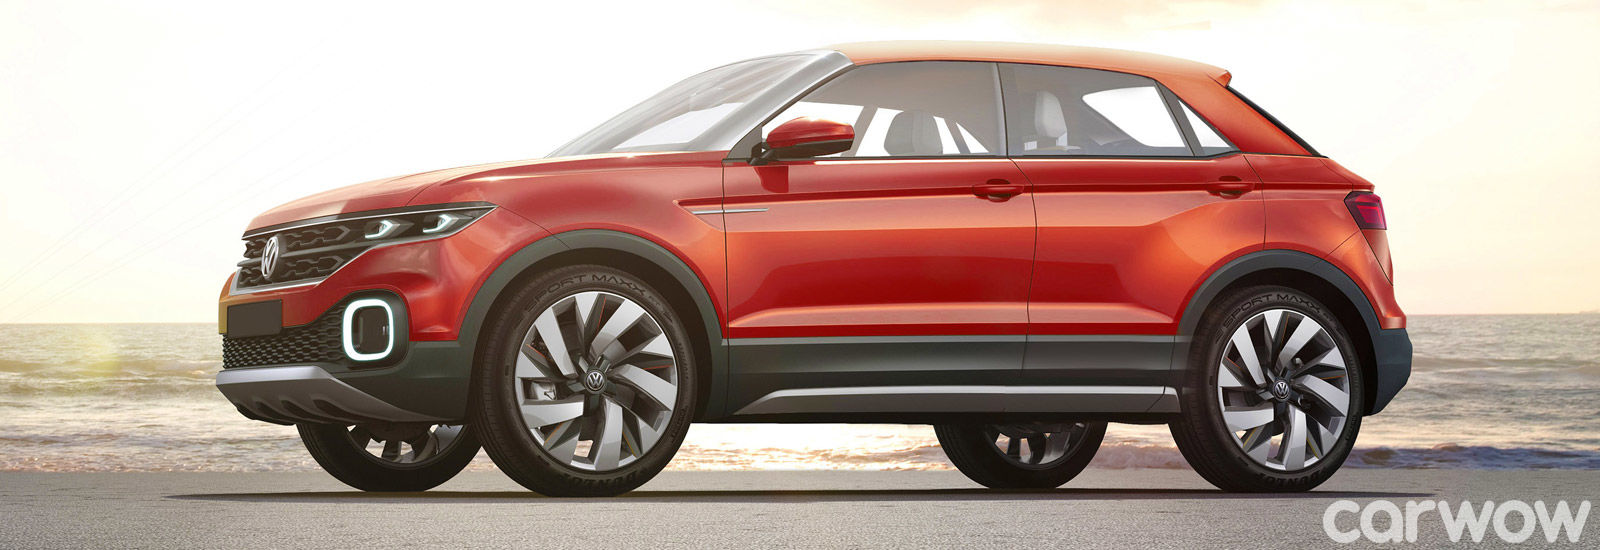 2018 Vw T Cross Price Specs Release Date Carwow